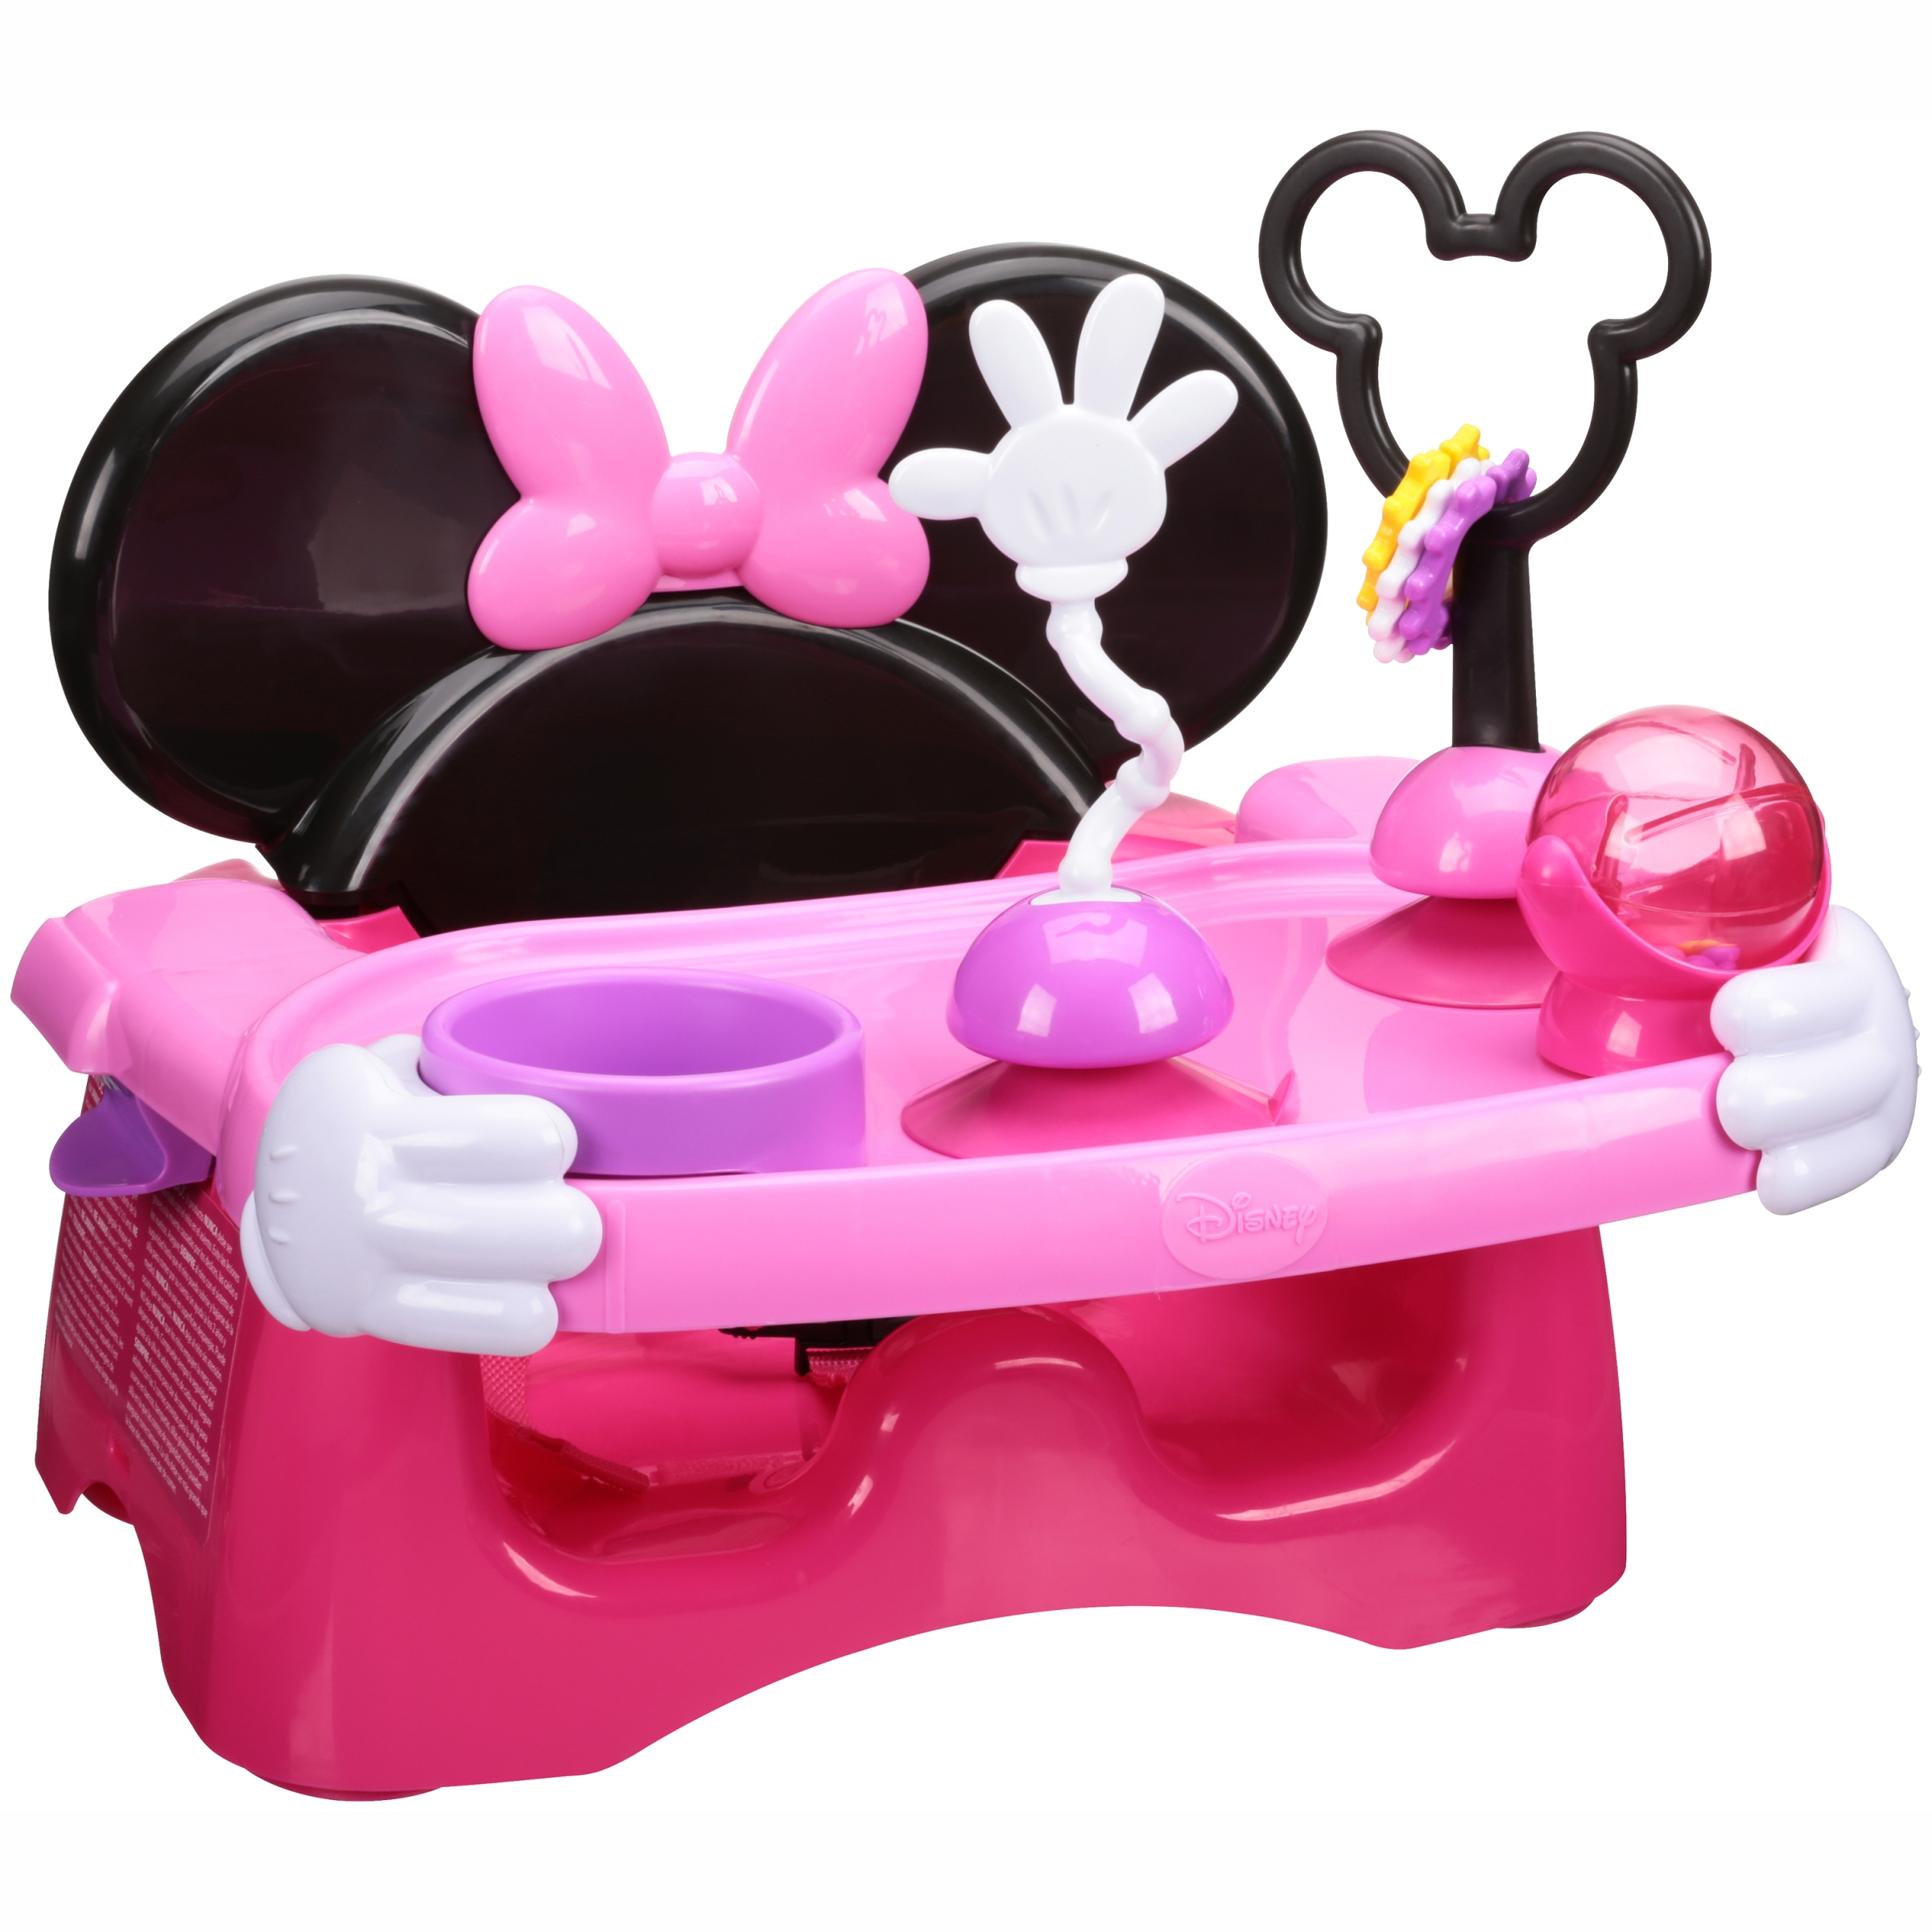 The First Years�� Disney Minnie Mouse Helping Hands Feeding & Activity Set Hair Chair 7 pc Box